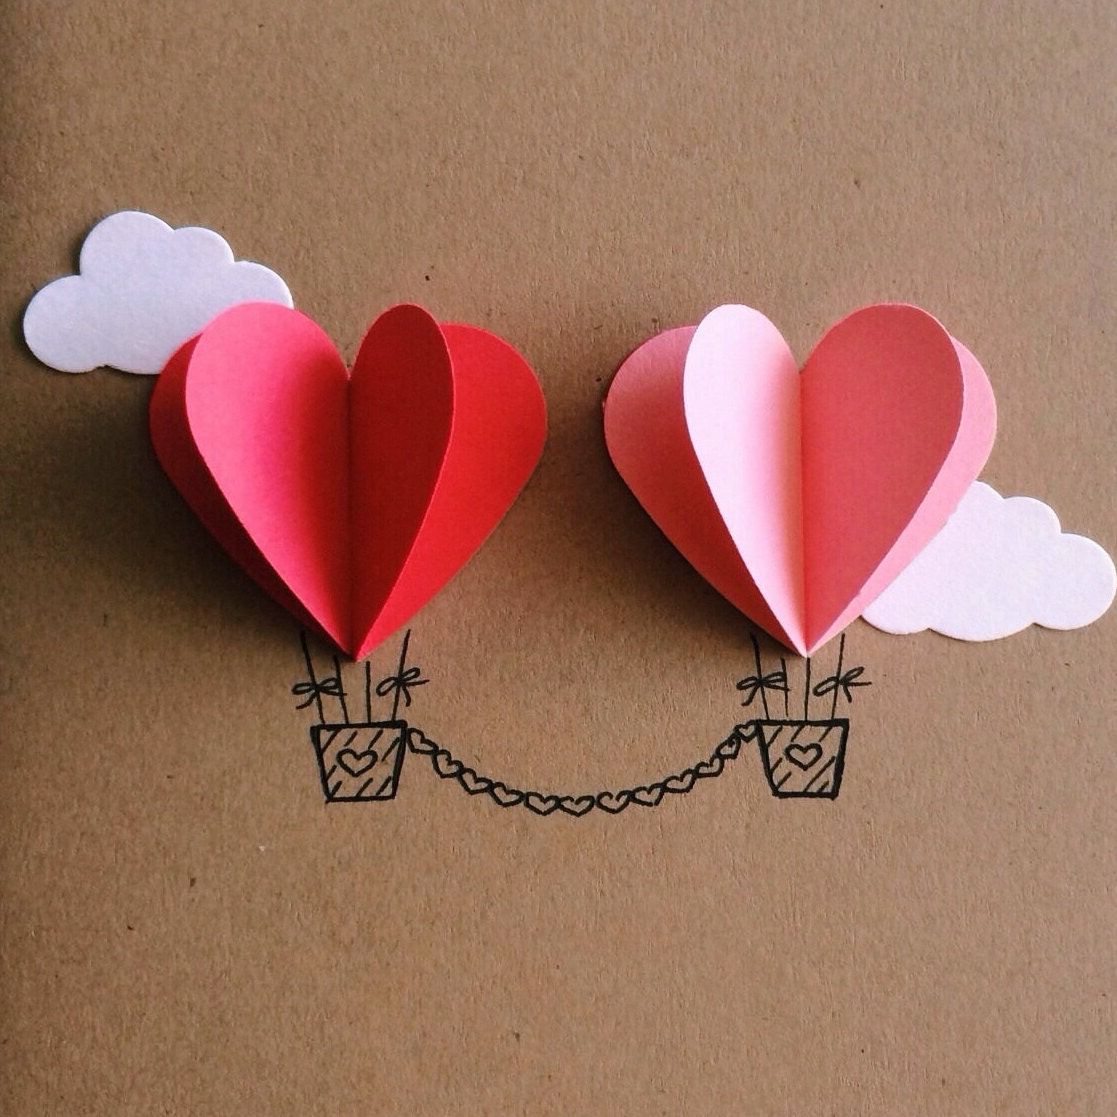 Couple Heart Hot Air Balloon Card red / pink | Etsy